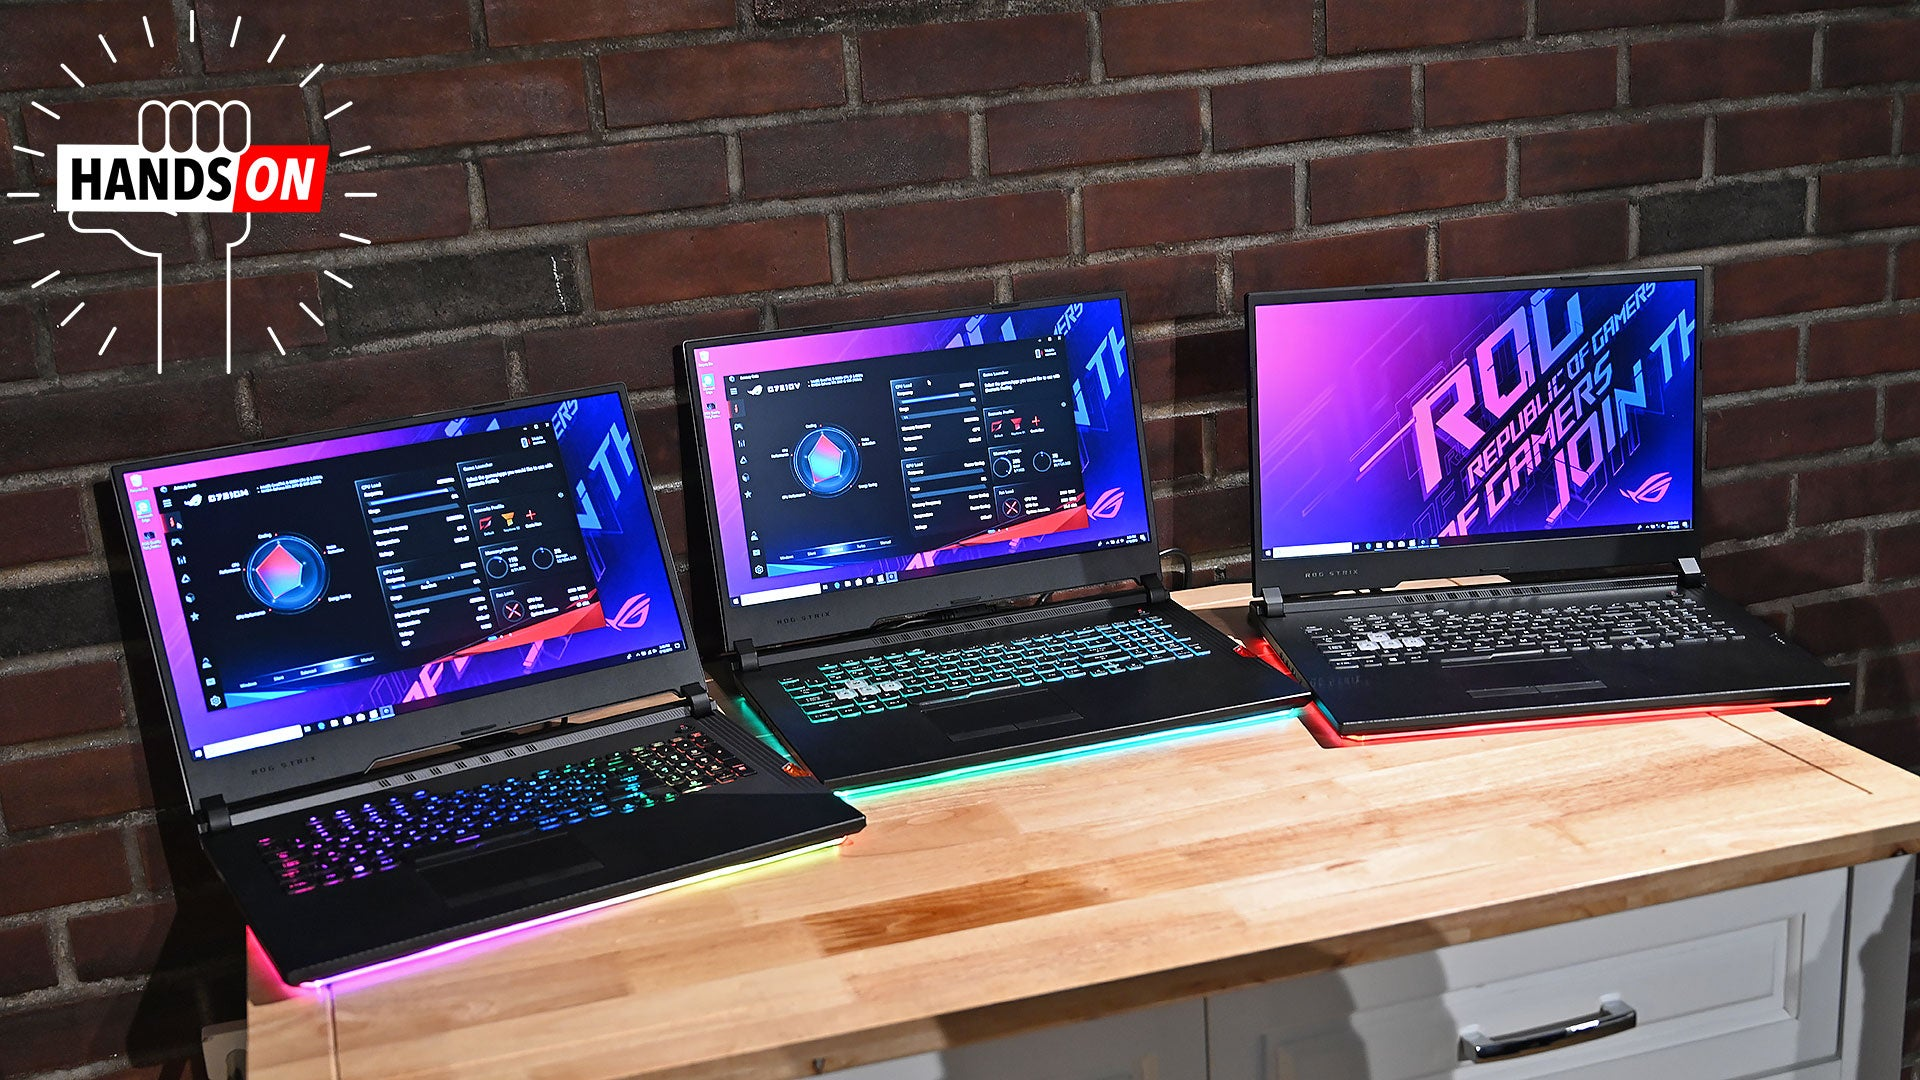 Asus Basically Overhauled Its Entire Gaming Laptop Lineup With Faster Everything